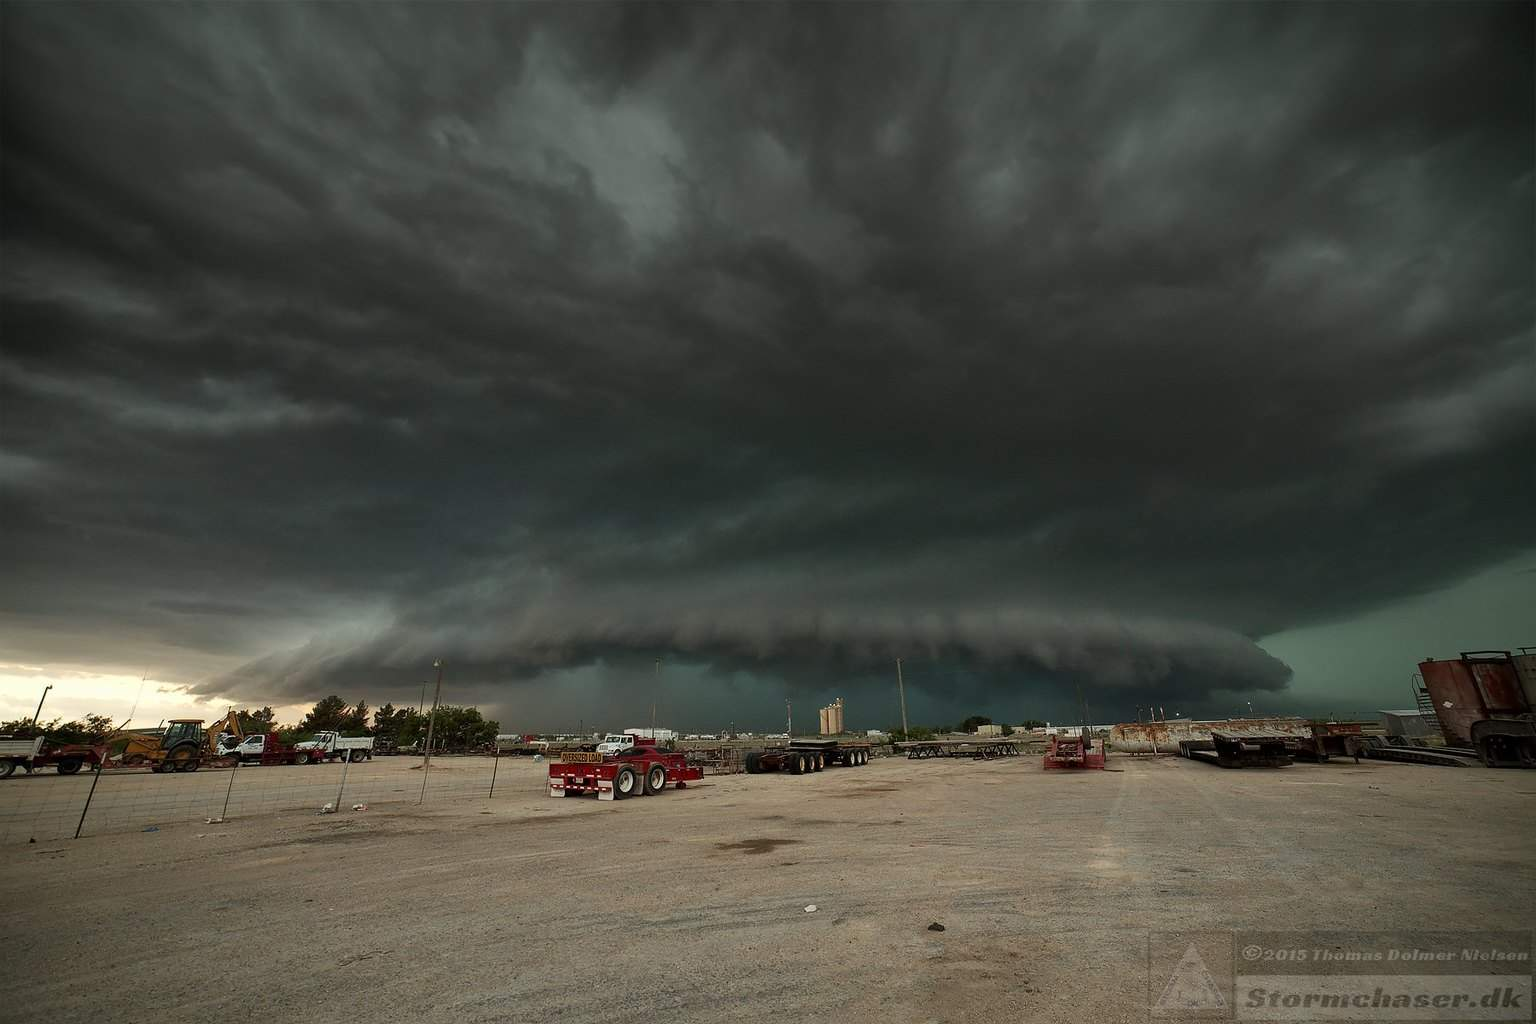 Approaching supercell. Big Lake, TX. May 24th 2014.  We took cover from hail at a gas station, but they weren't so large after all. Serious flooding in the city afterwards, though. Sorry for the weird distortion. The Samyang 14 mm 2.8 is a fantastisk sharp lens, but the moustache distortion is a pain to get rid of.